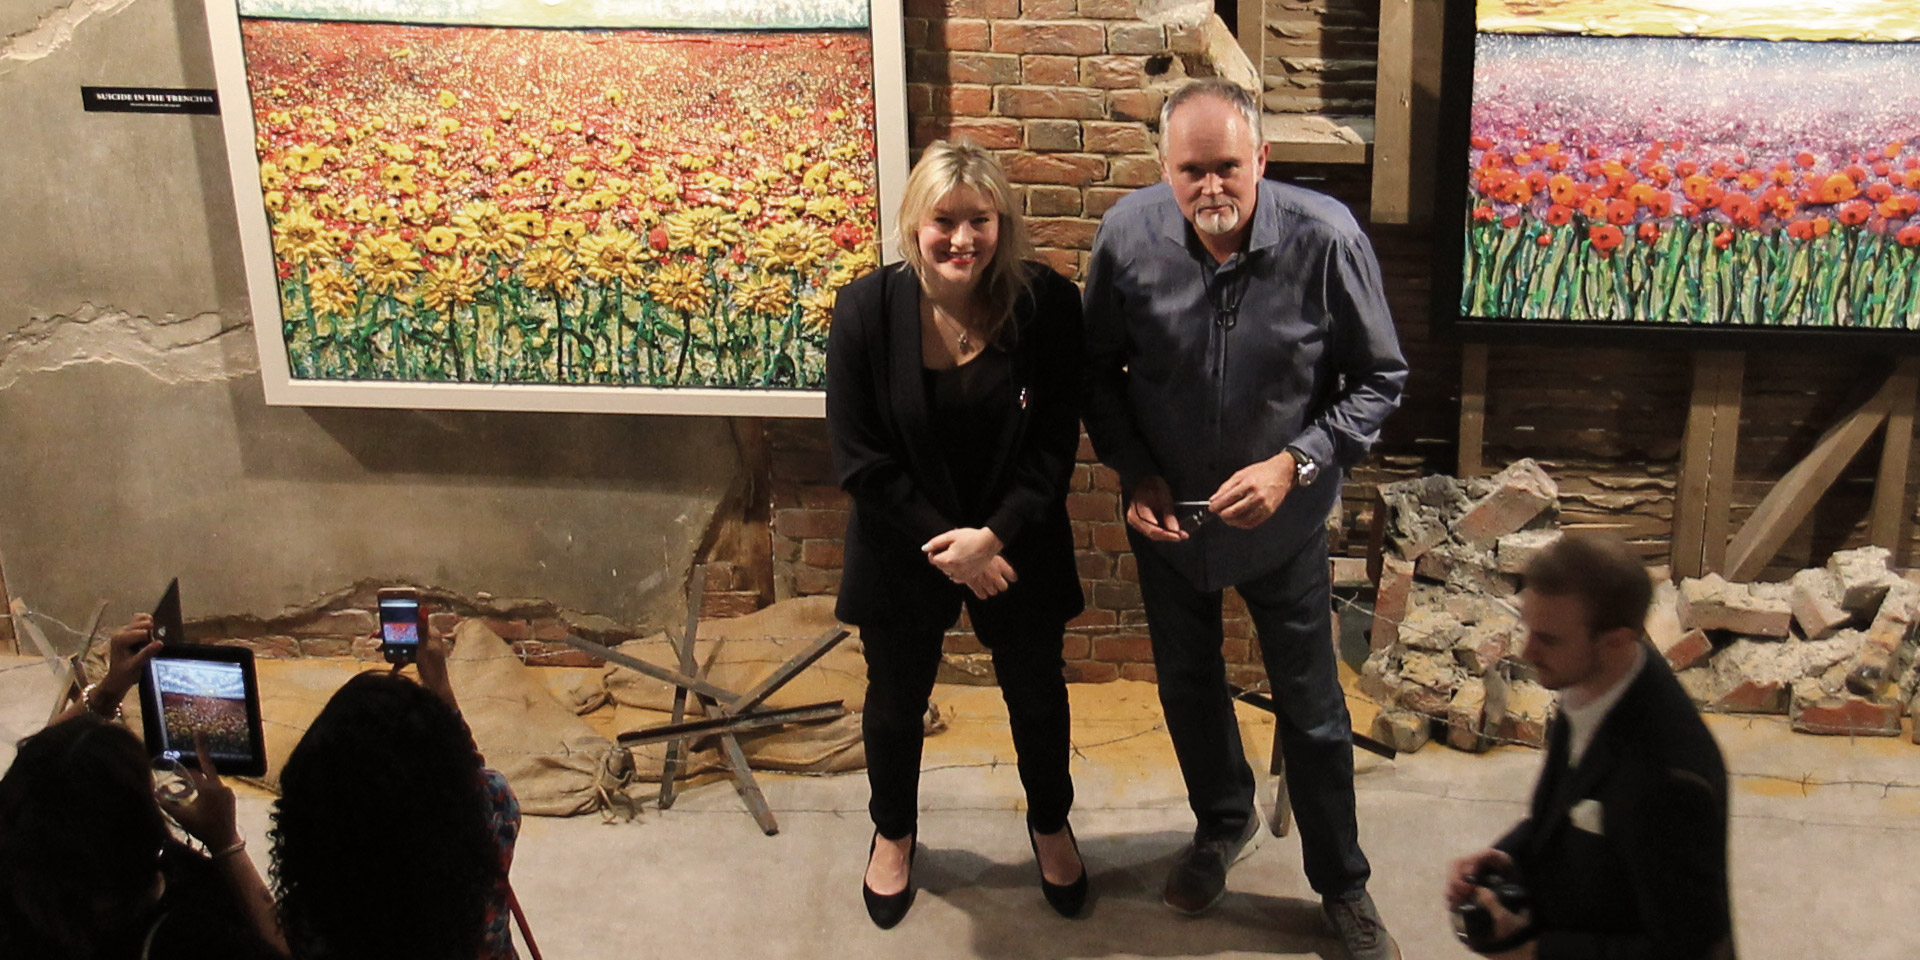 Scarlett Raven and Marc Marot, the creators of The Danger Tree